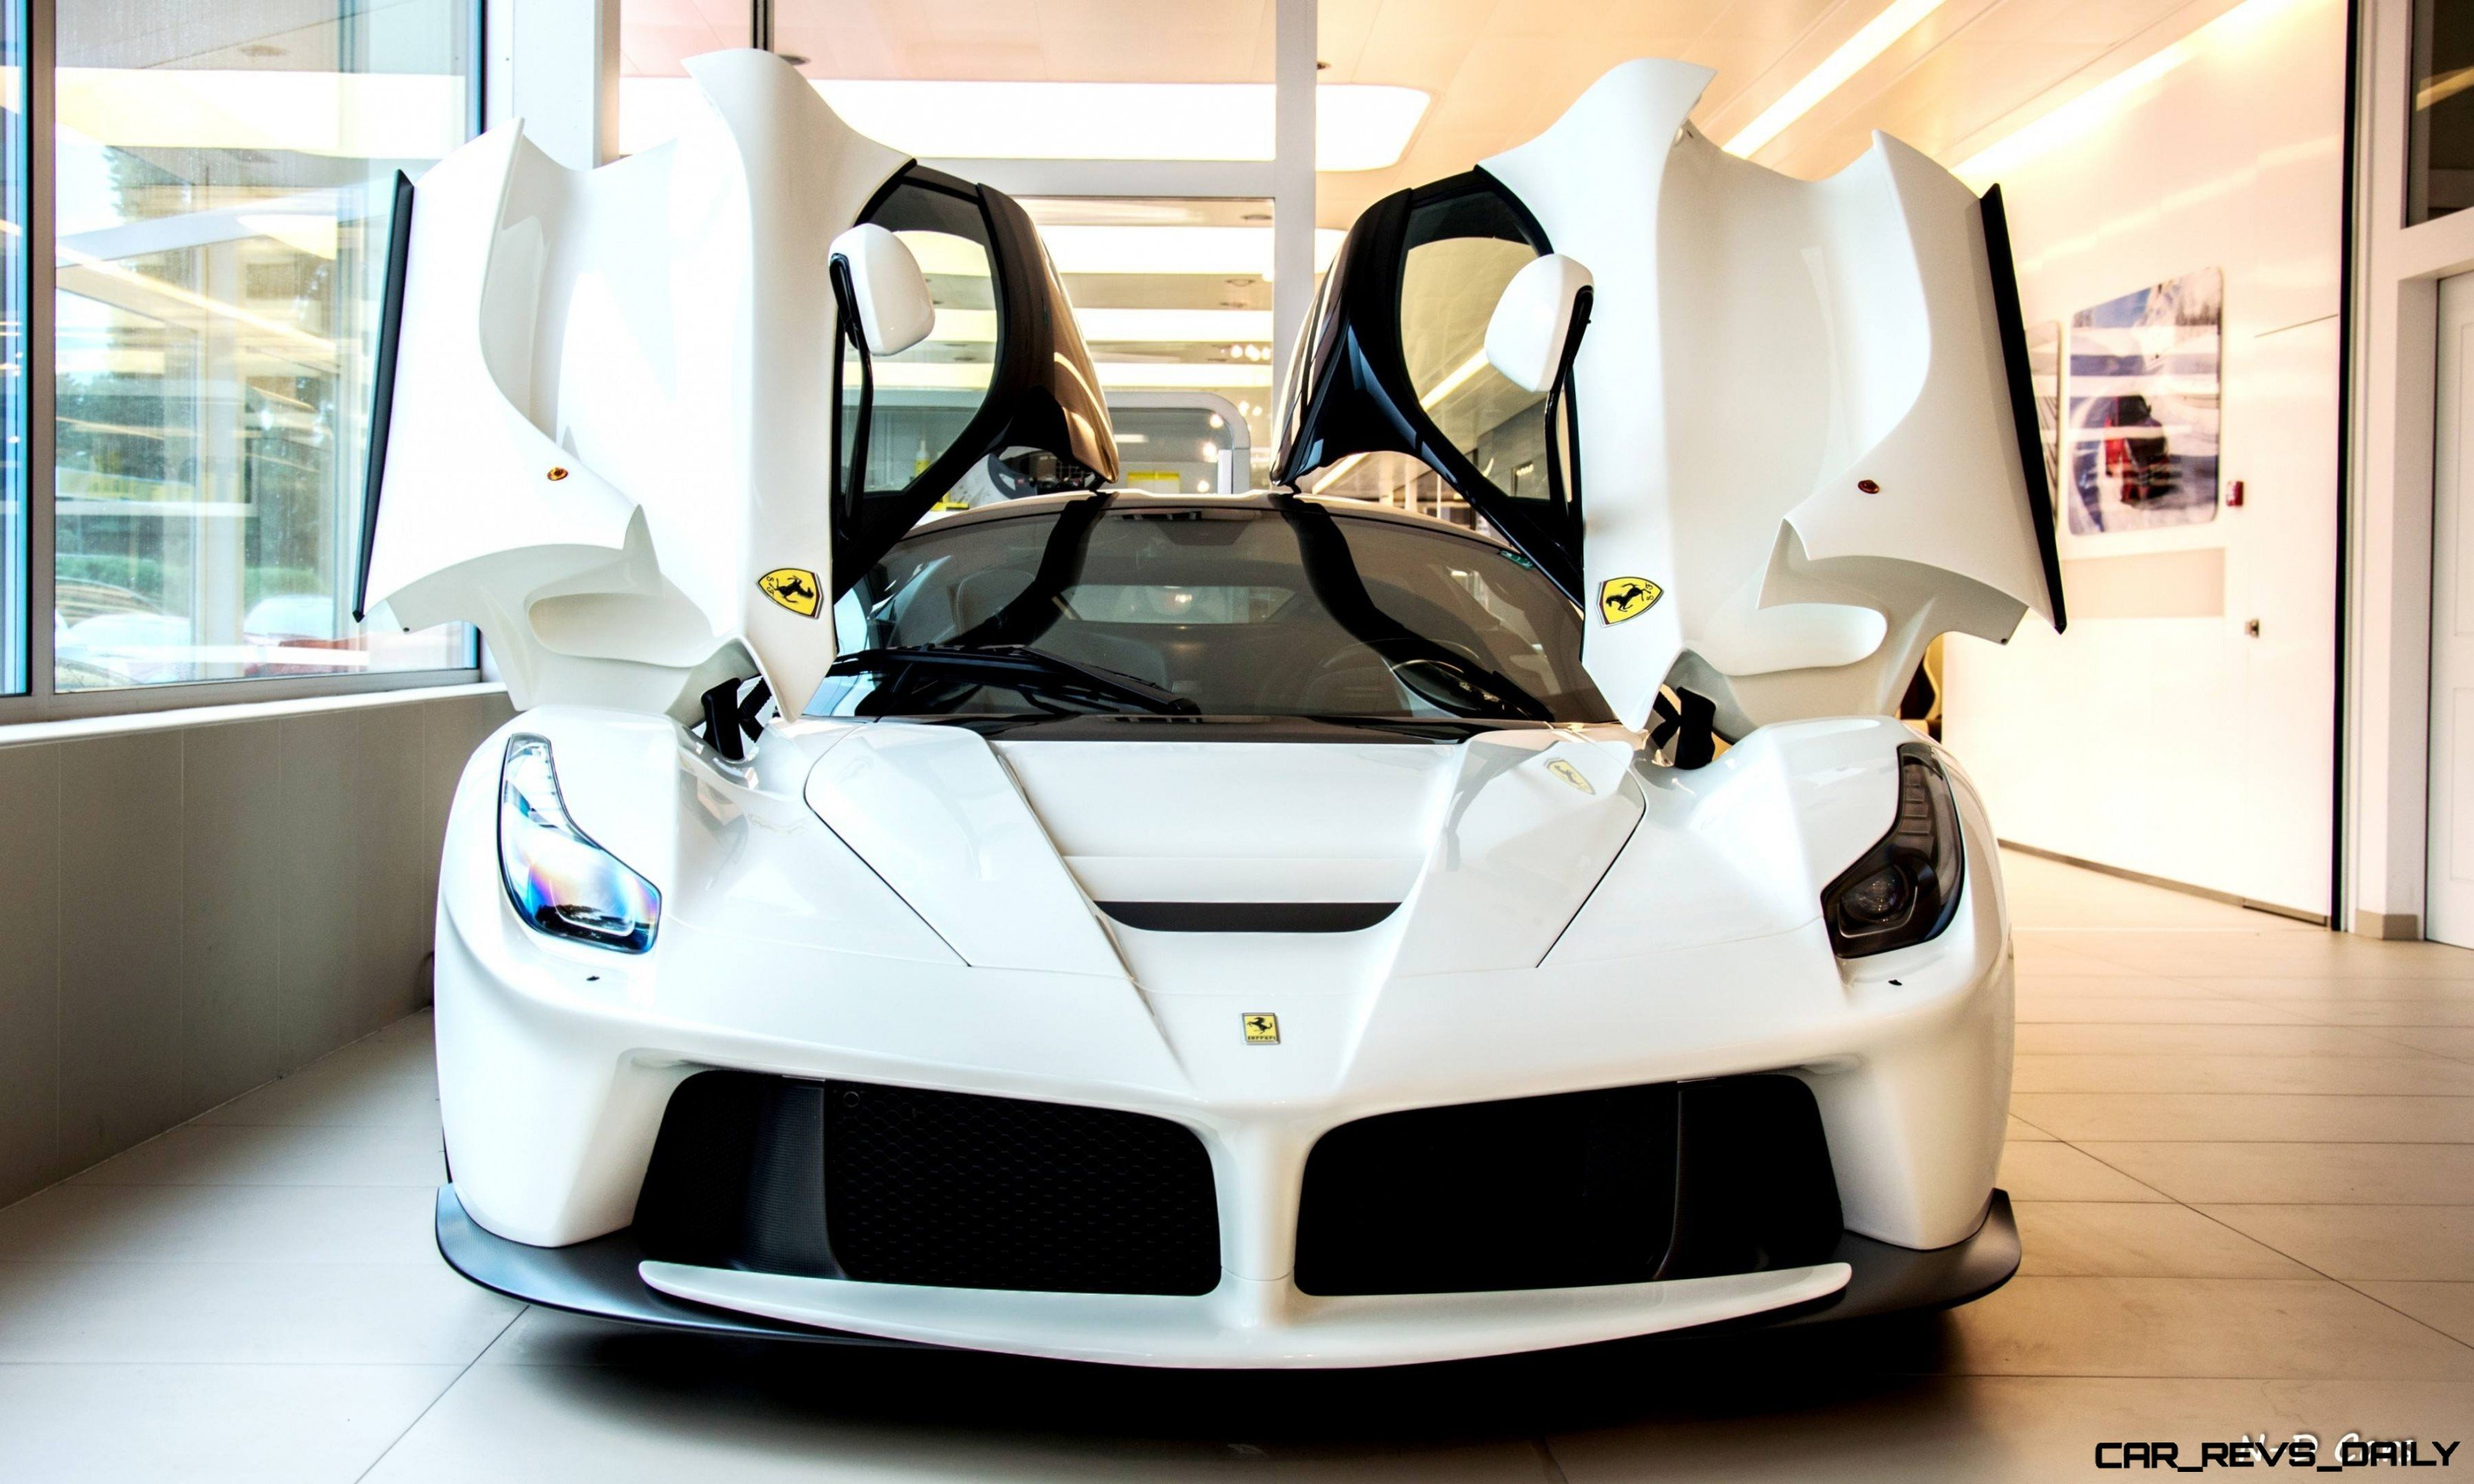 Car Slideshow Wallpaper White Laferrari Snapped In Geneva This Week By N D Photography